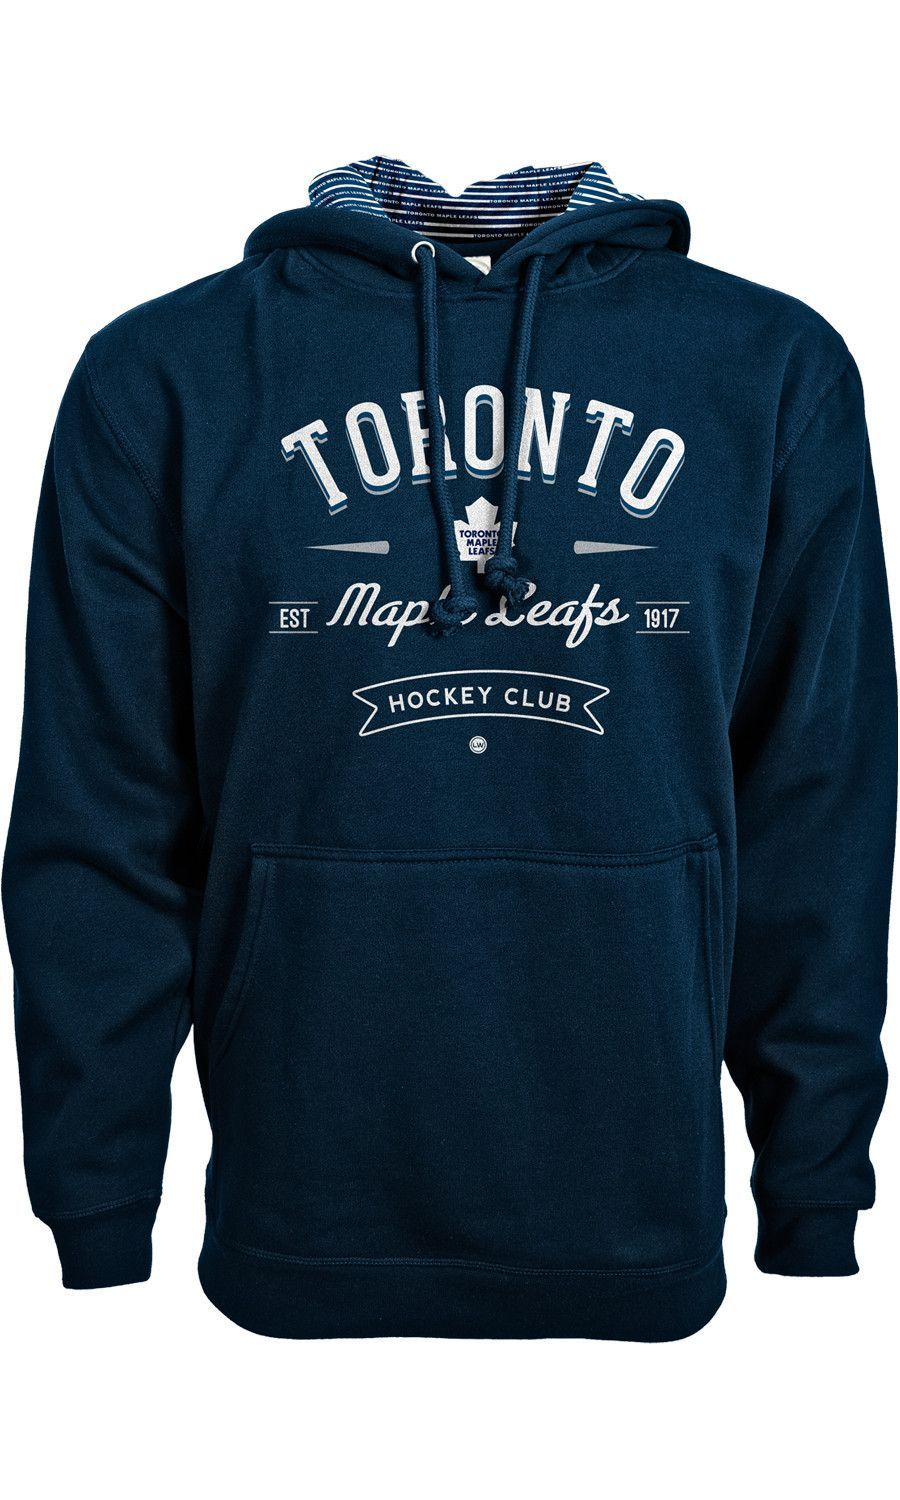 Toronto Maple Leafs Hoodie, Men's, Solidarity